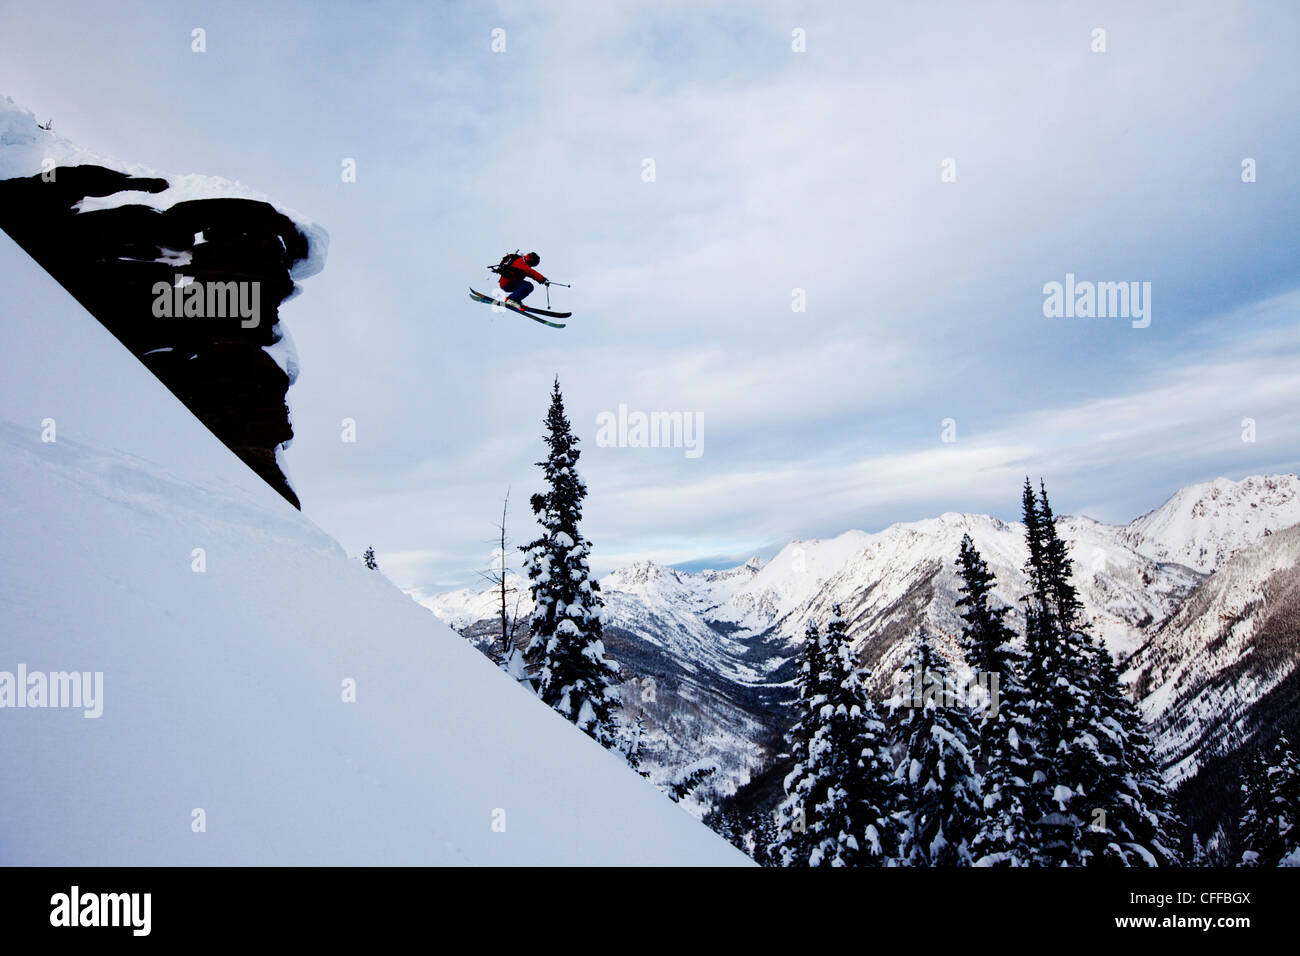 A athletic skier jumping off a cliff in the backcountry in Colorado. - Stock Image